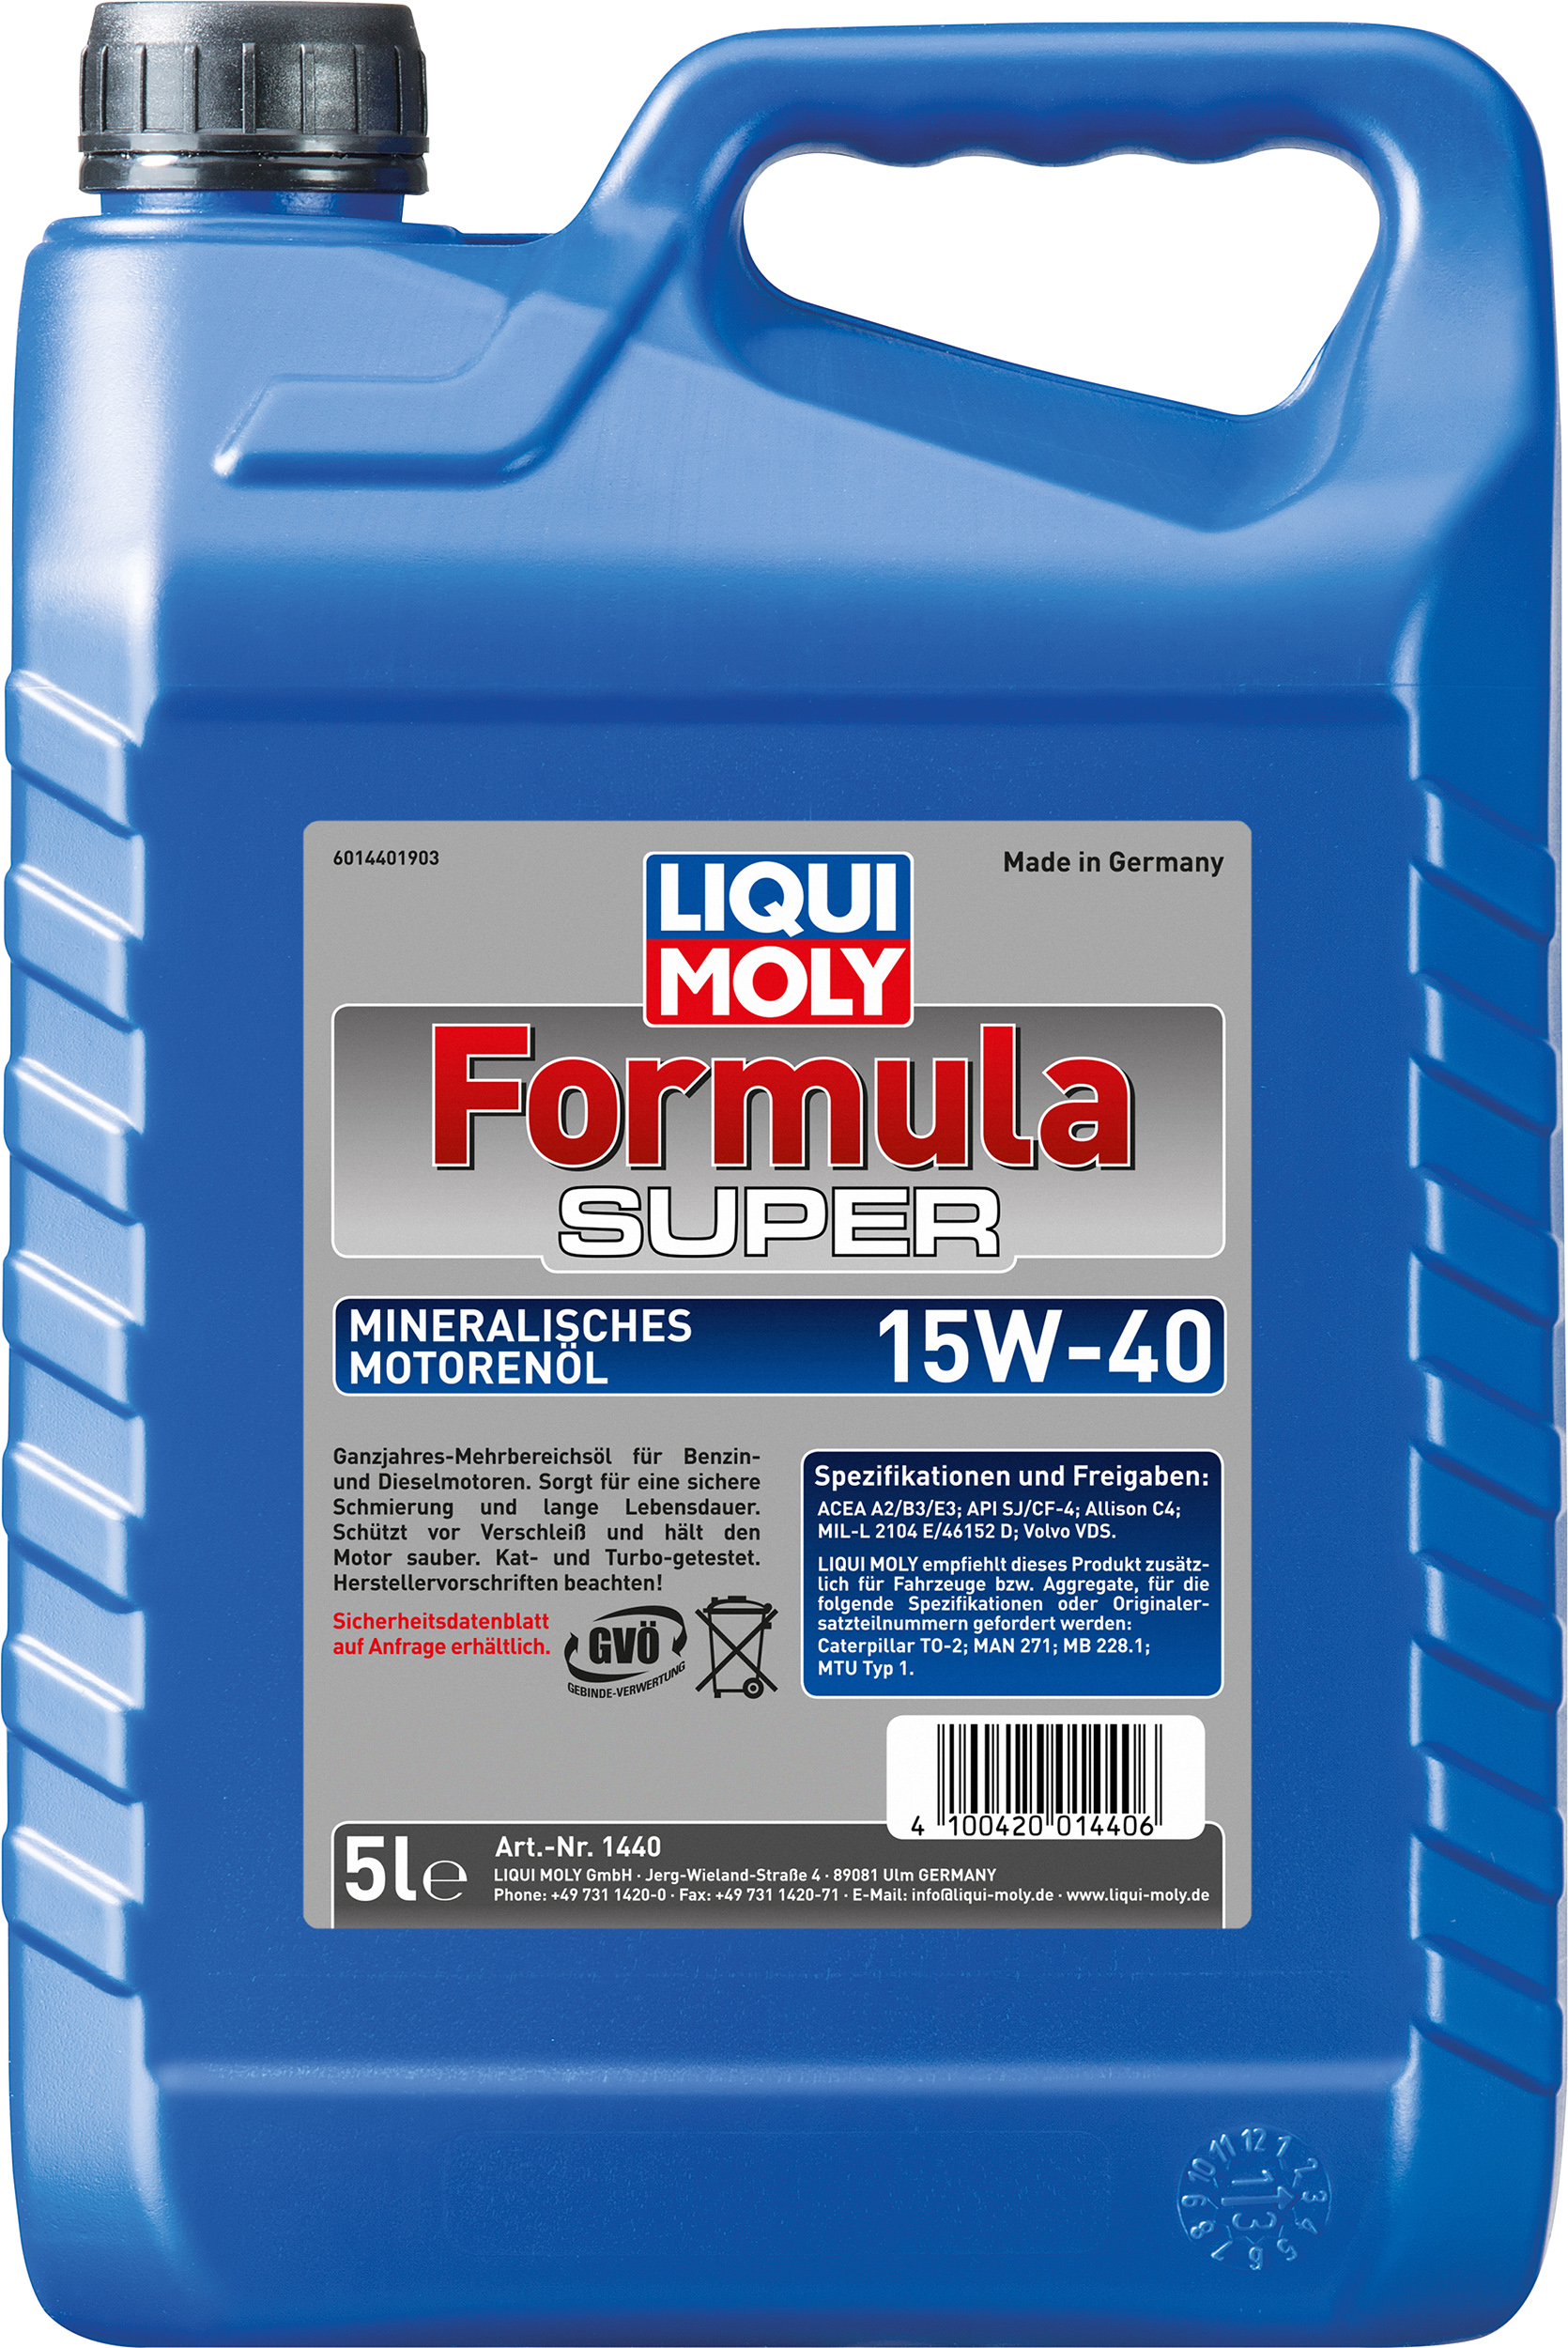 liqui moly motor l formula super 15w 40 motor le globus baumarkt online shop. Black Bedroom Furniture Sets. Home Design Ideas